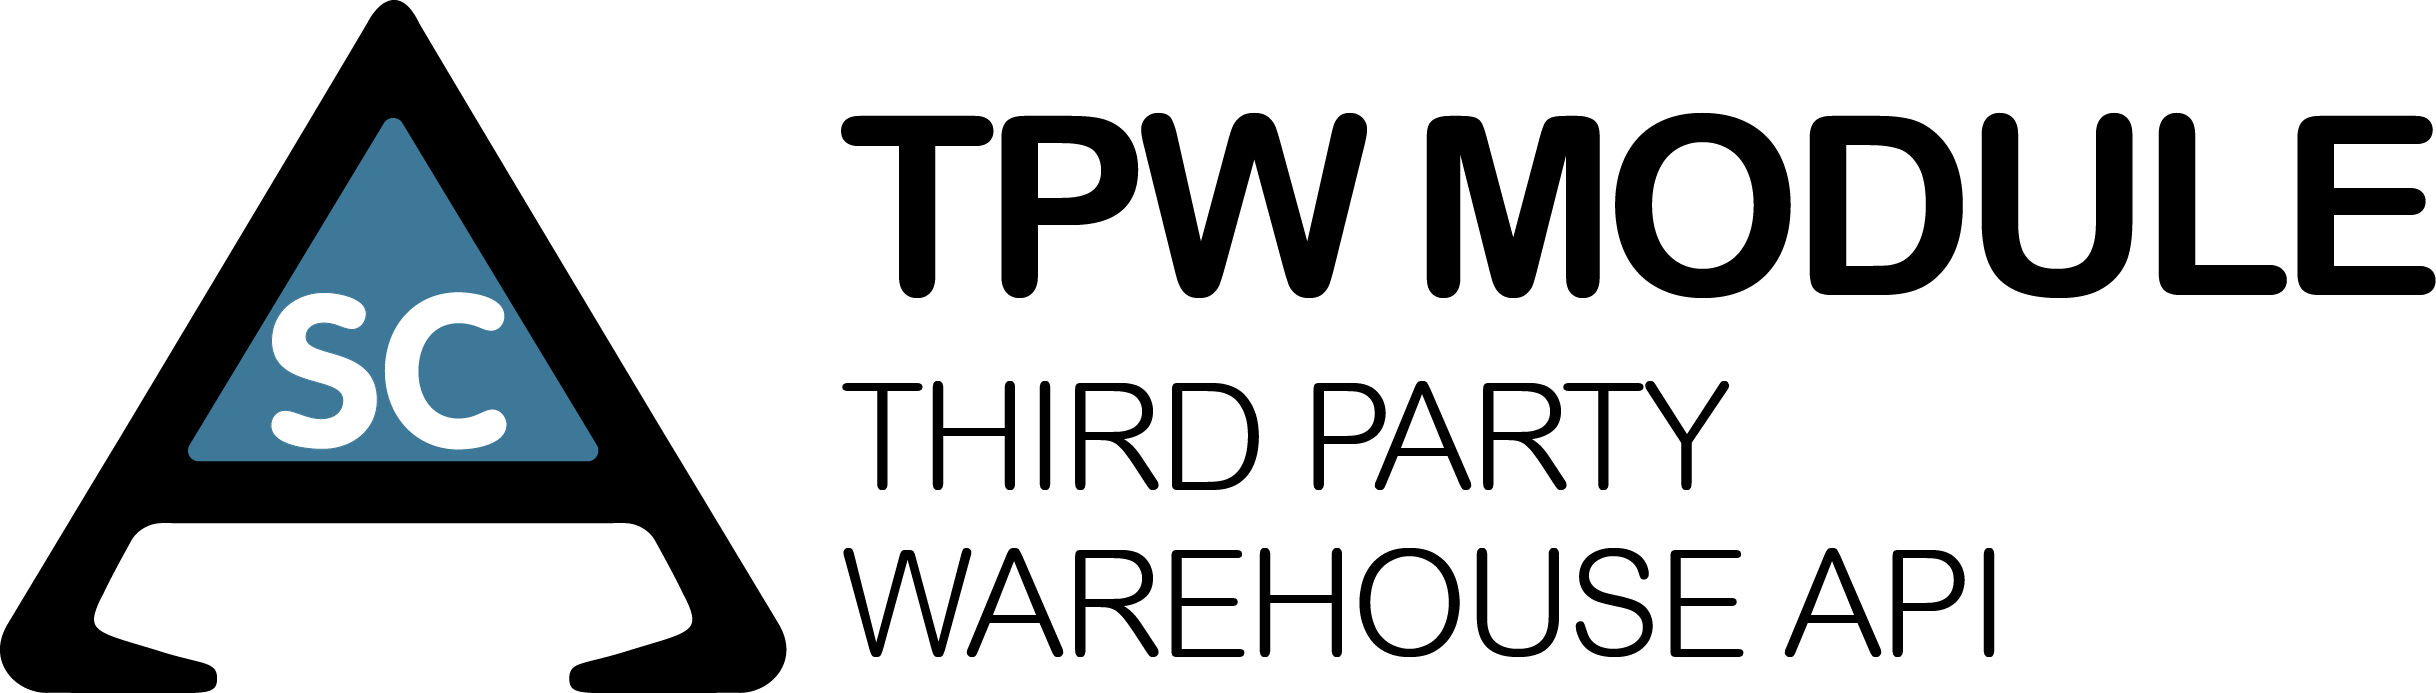 Third Party Warehouse API Module - Advanced Solutions and Consulting Co